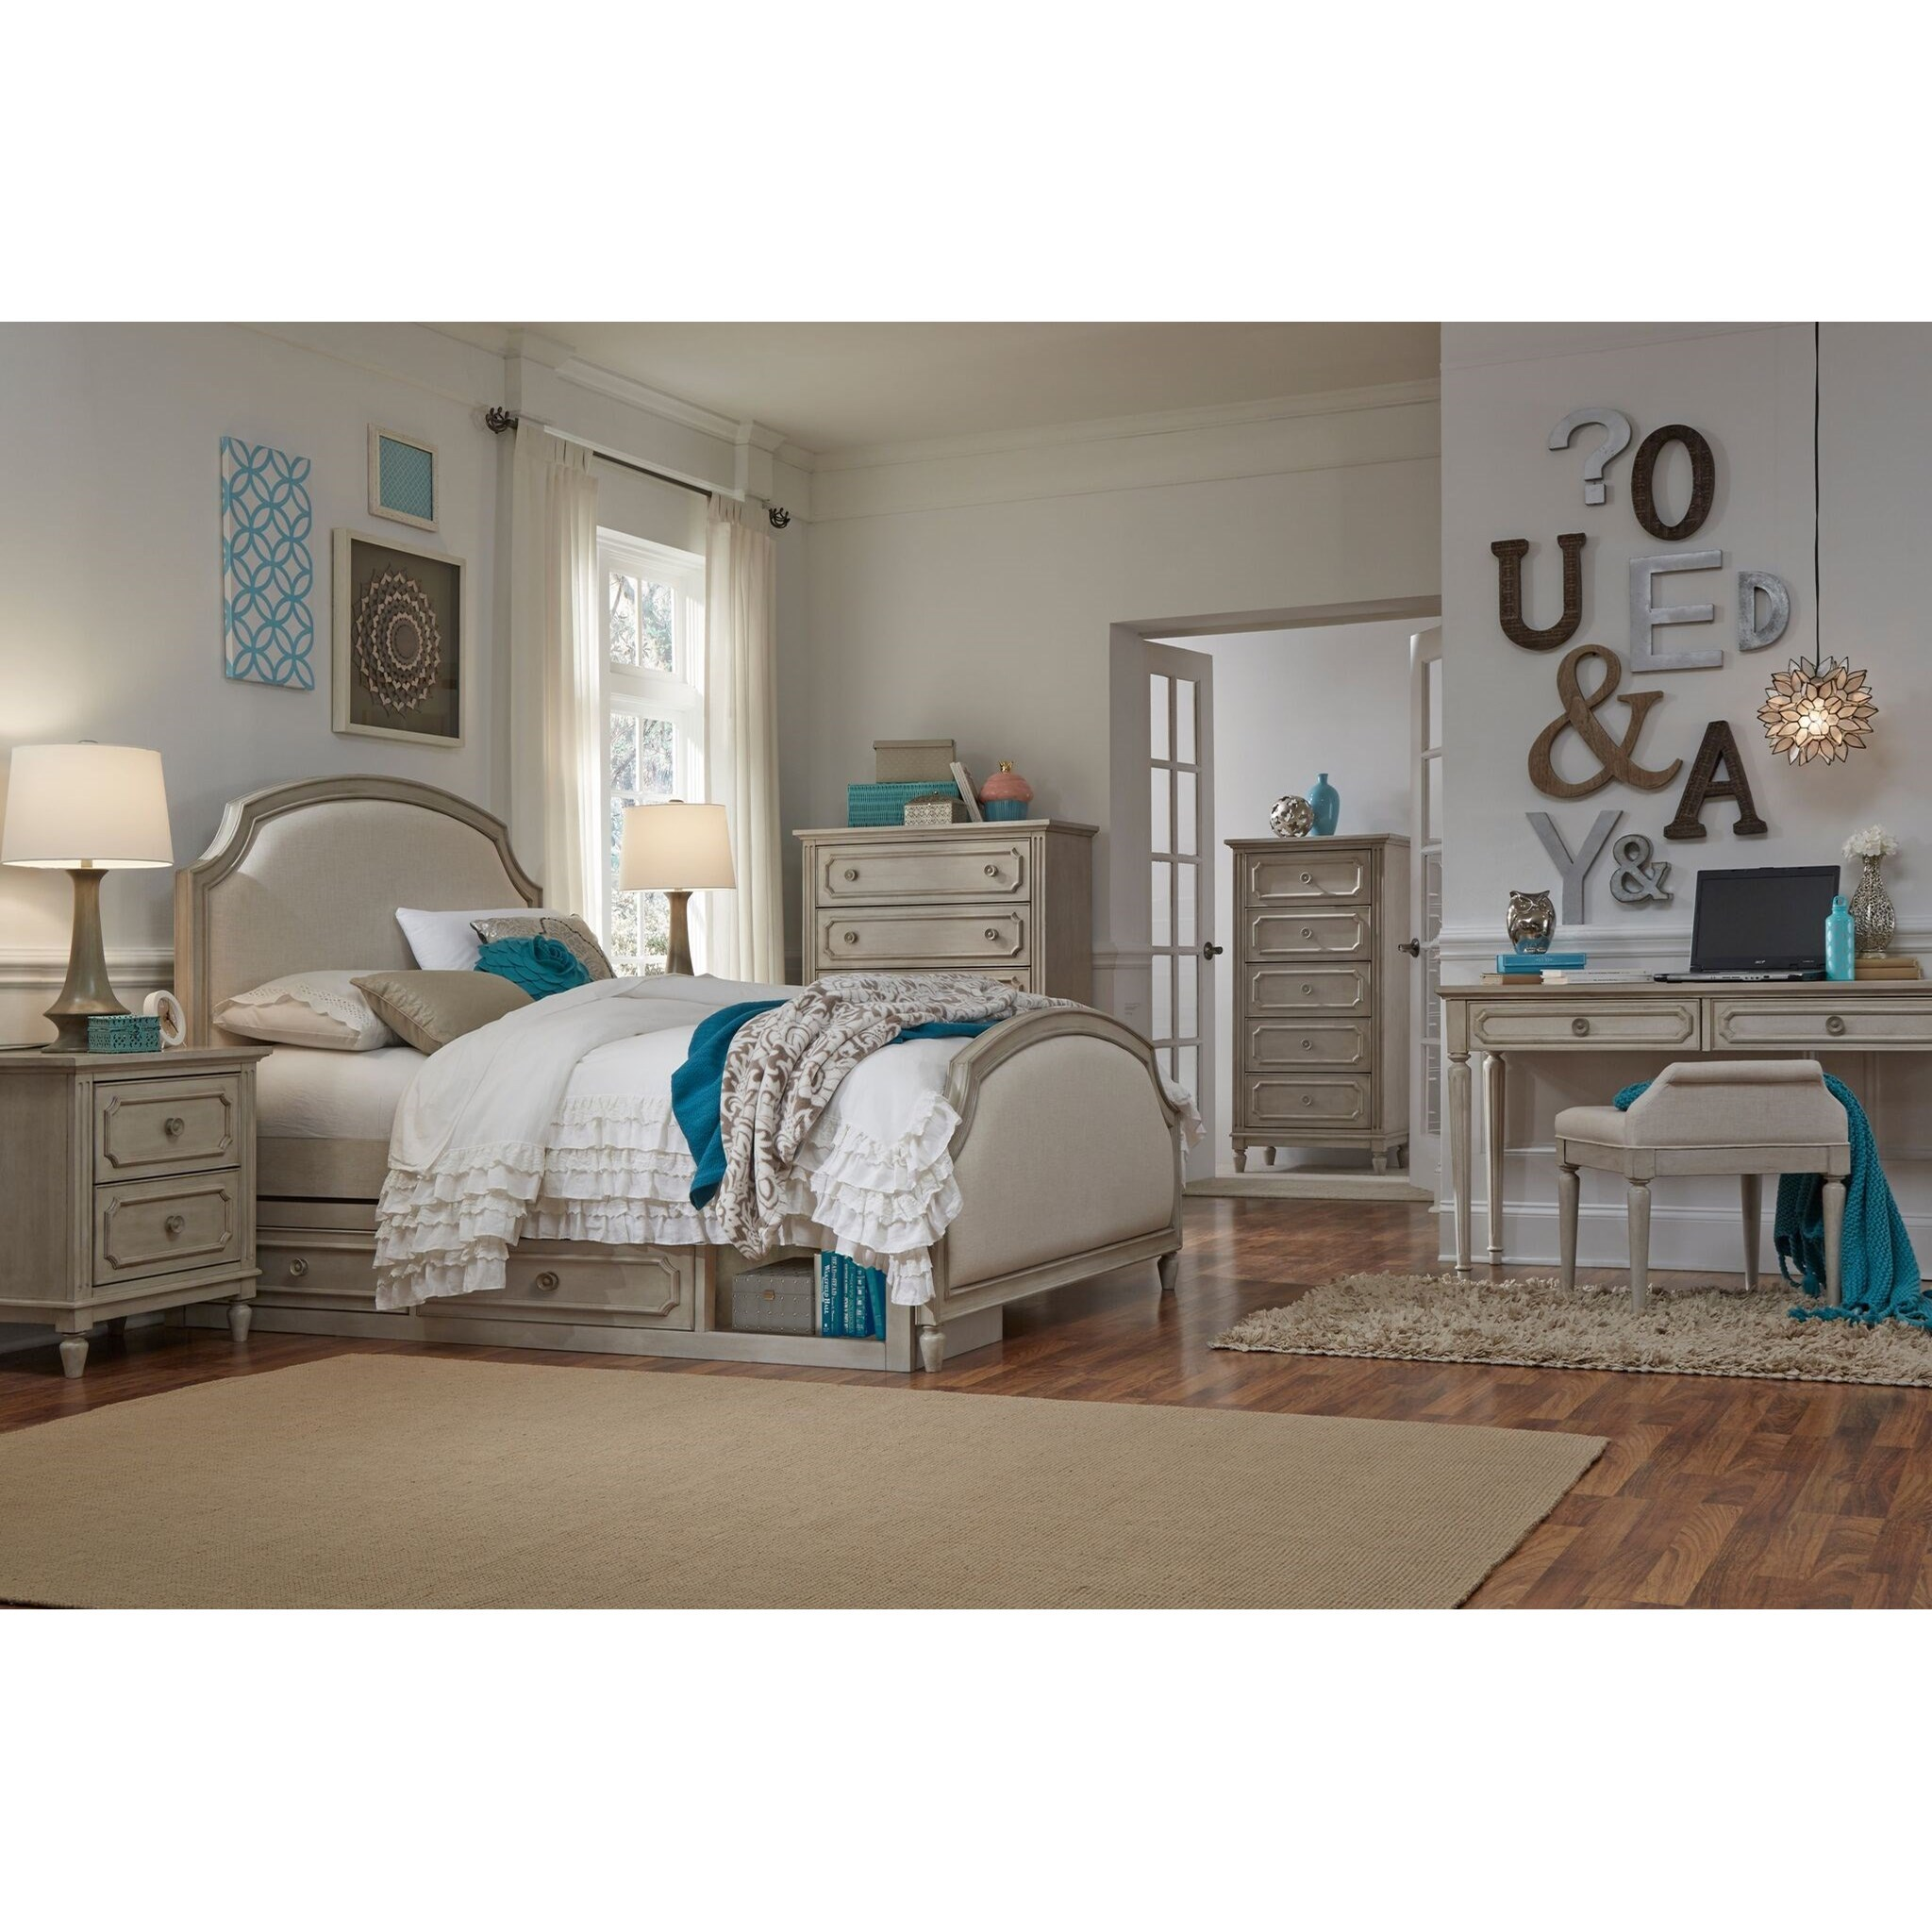 Kids Queen Bed Emma Queen Bedroom Group By Legacy Classic Kids At Olinde S Furniture